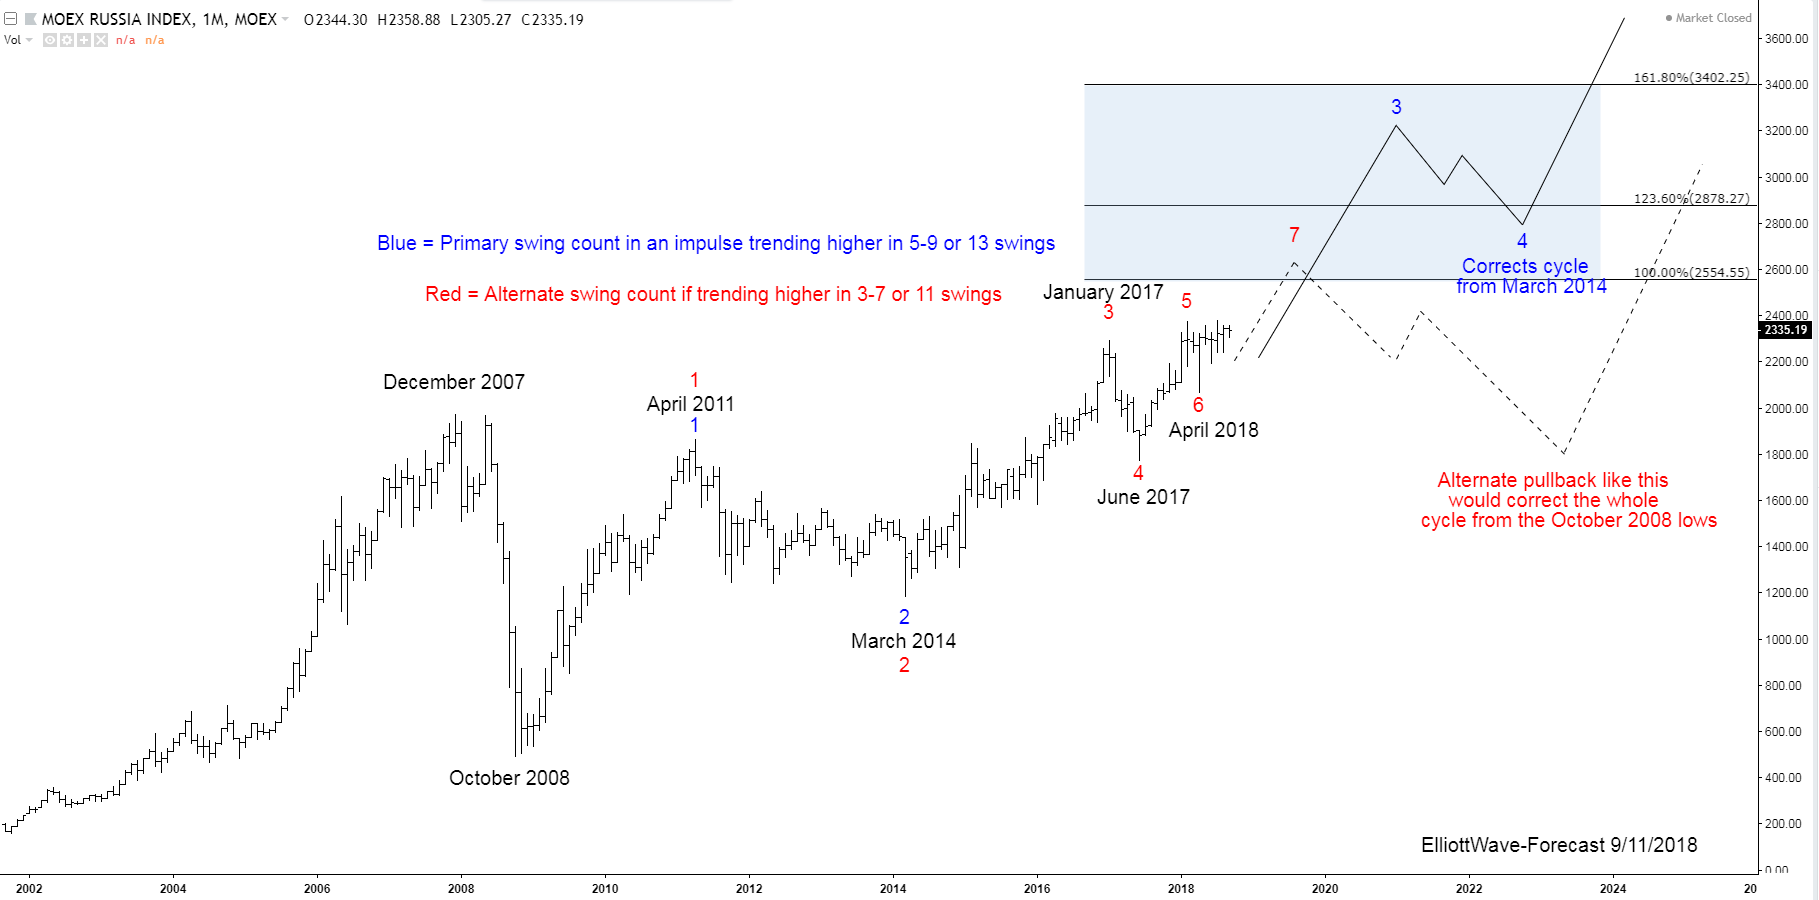 The Micex Index Long Term Bullish Trend and Cycles